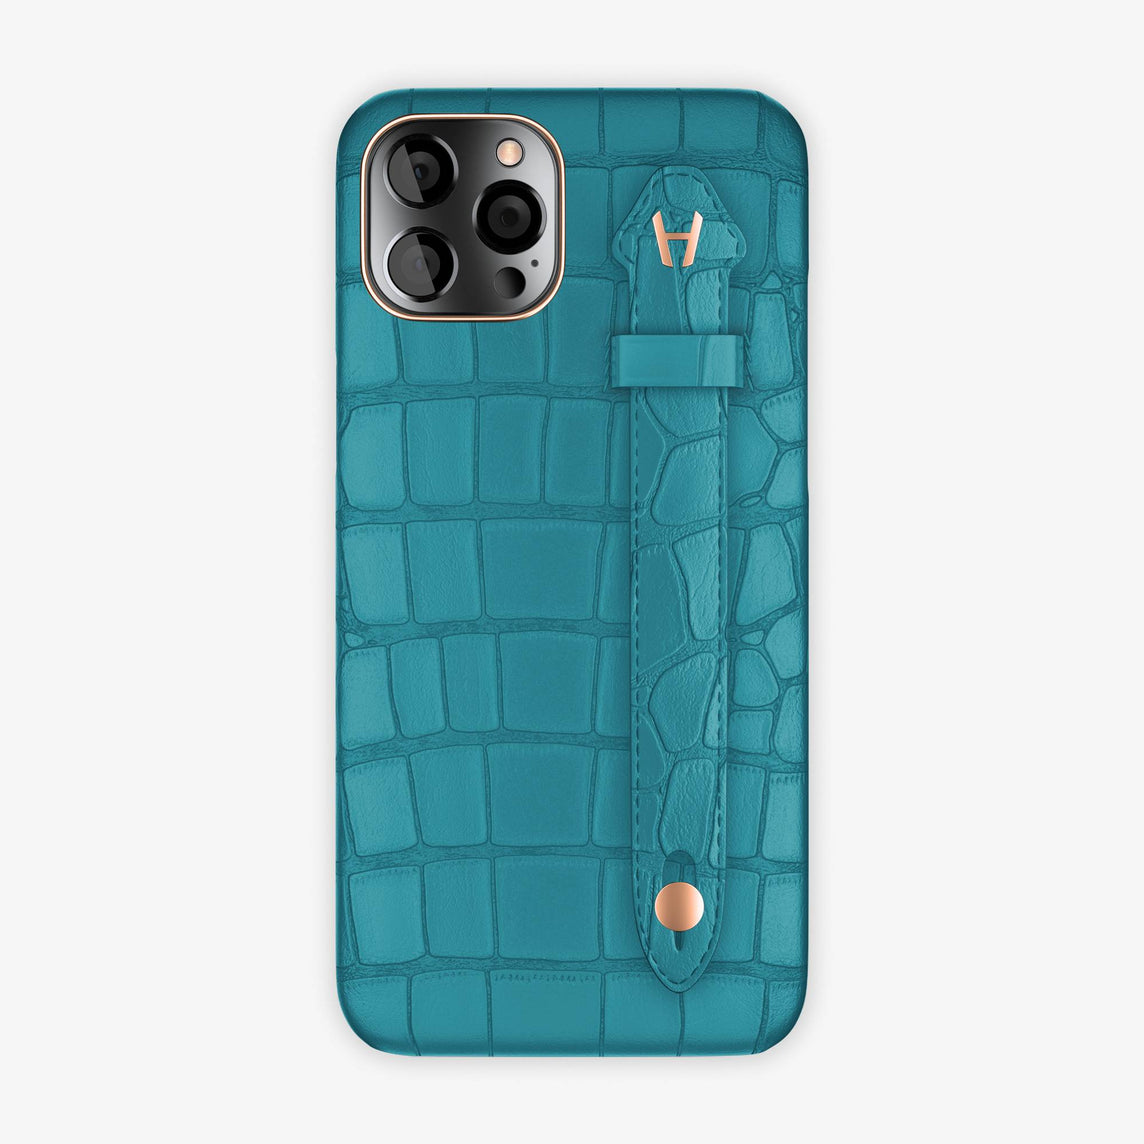 Alligator Side Finger Case iPhone 12 Pro Max | Blue Teal/Blue Teal - Rose Gold